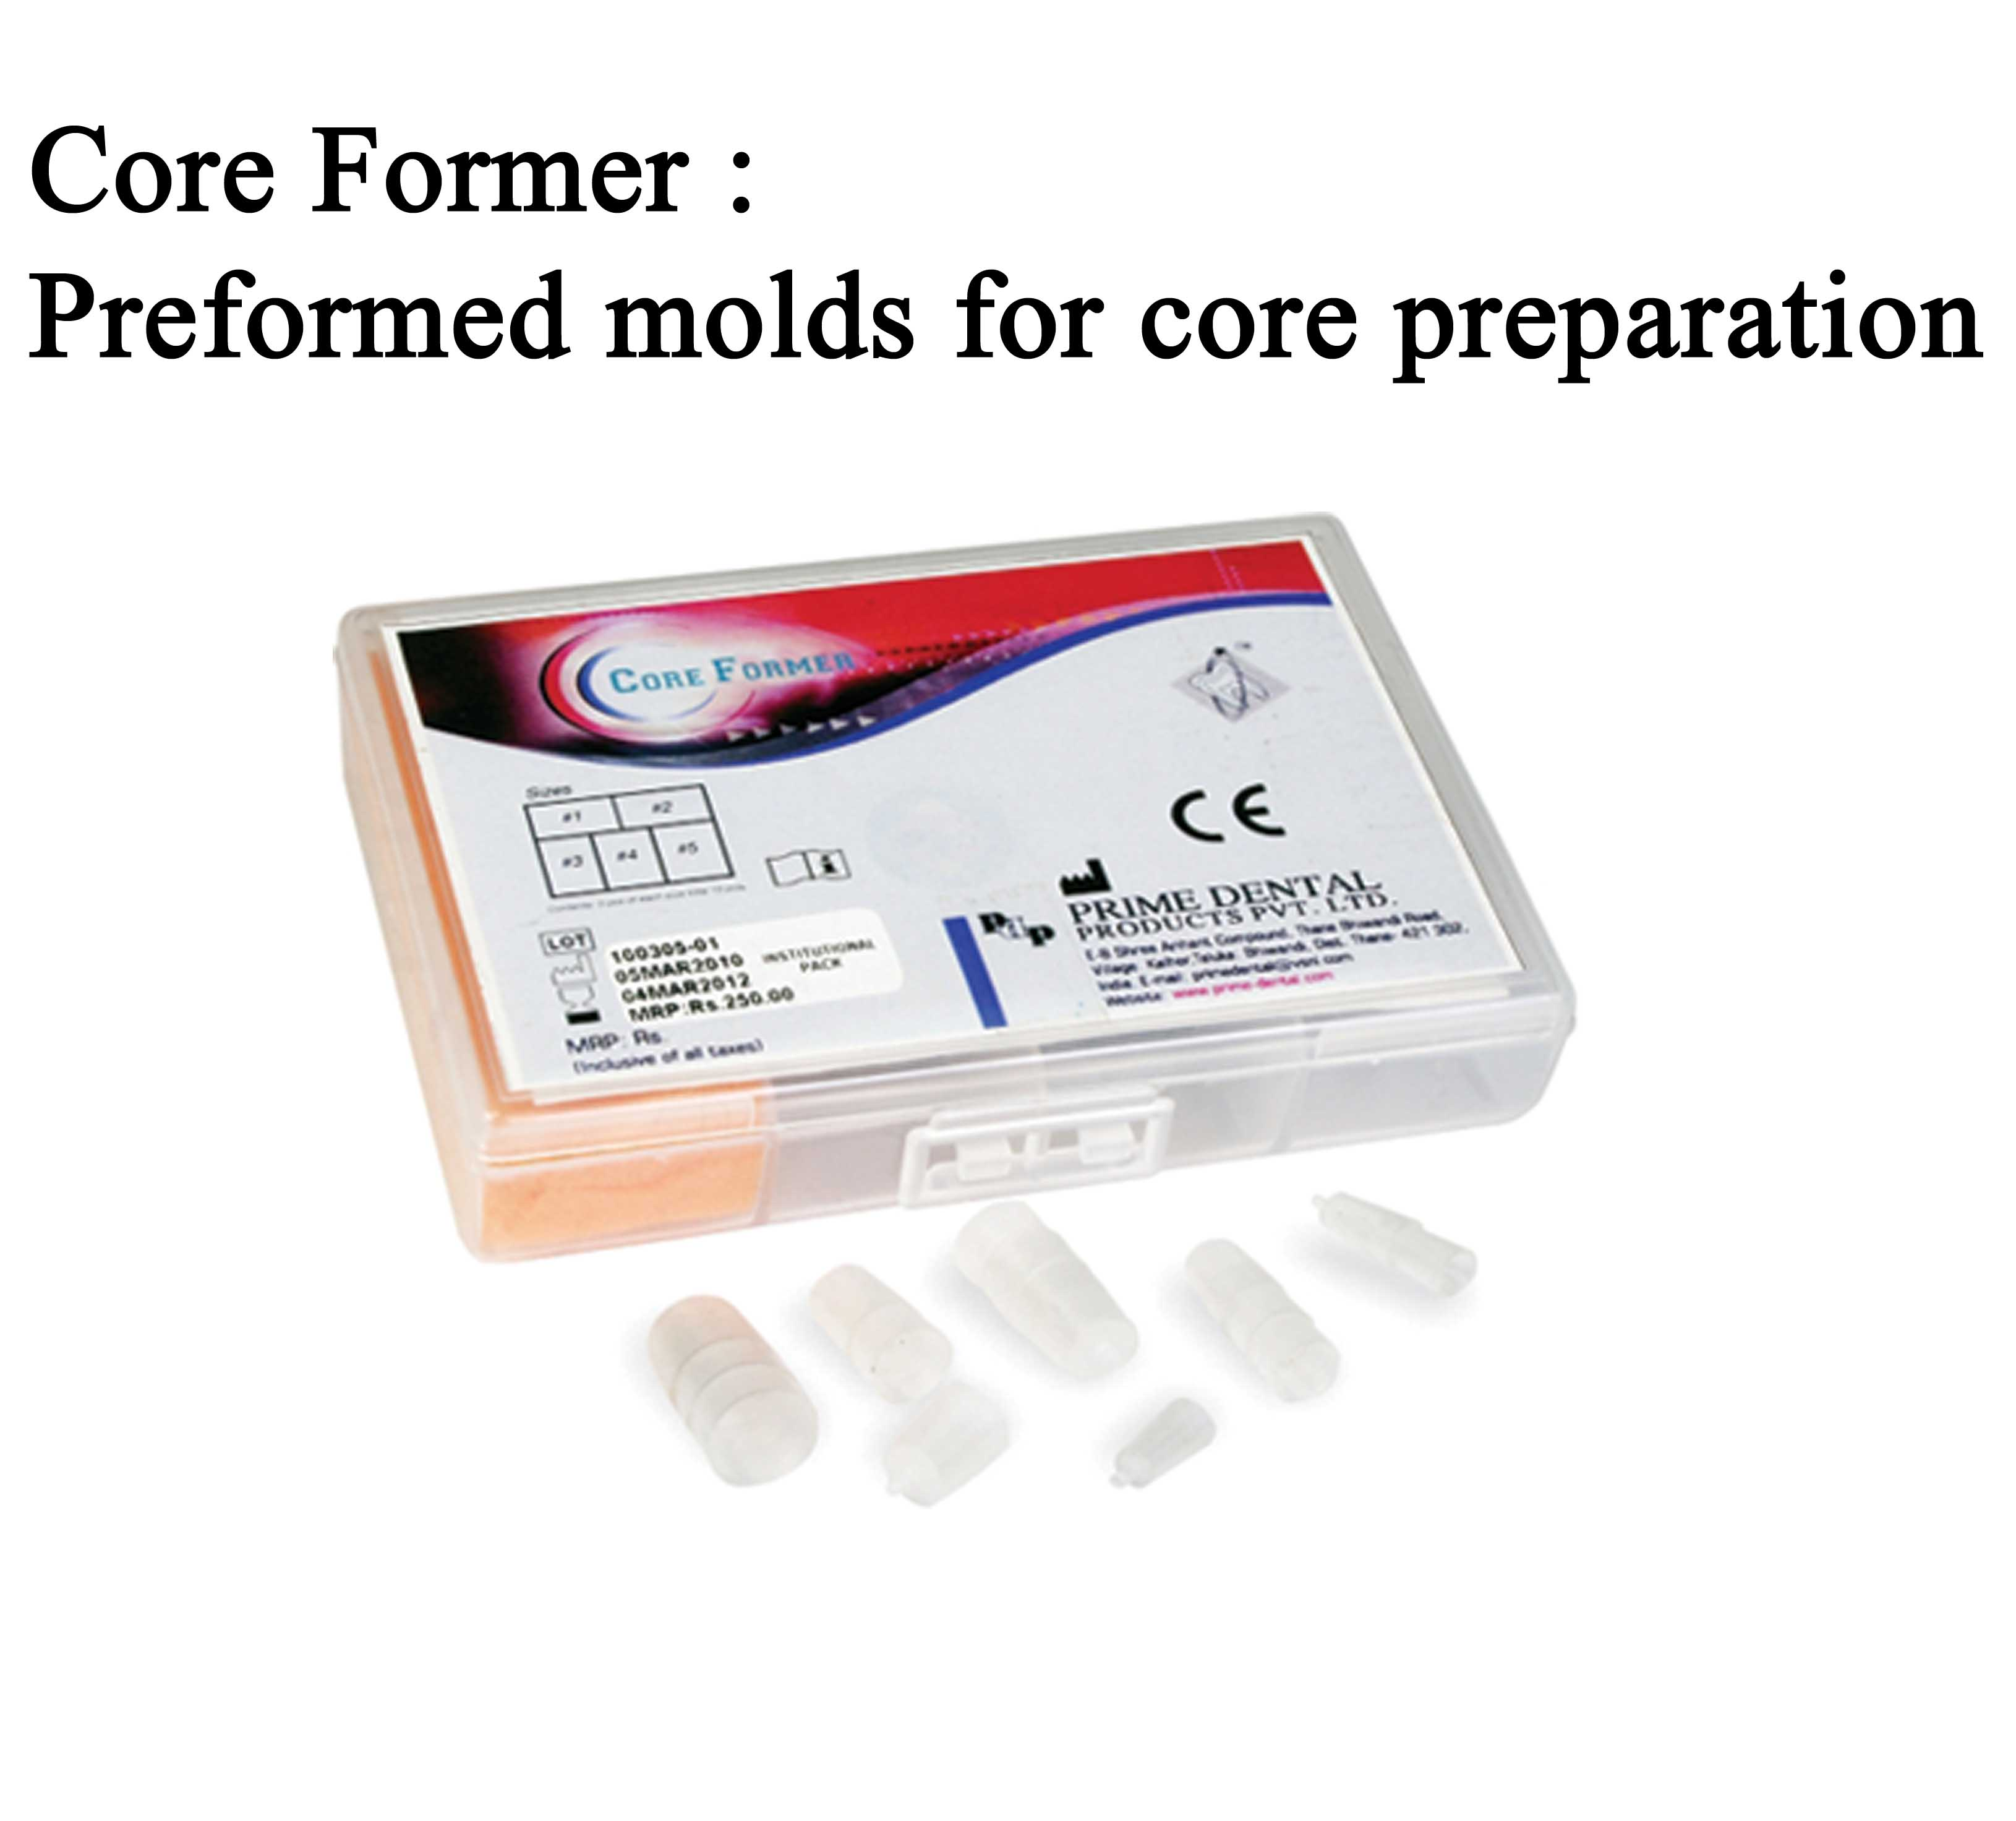 Core Former